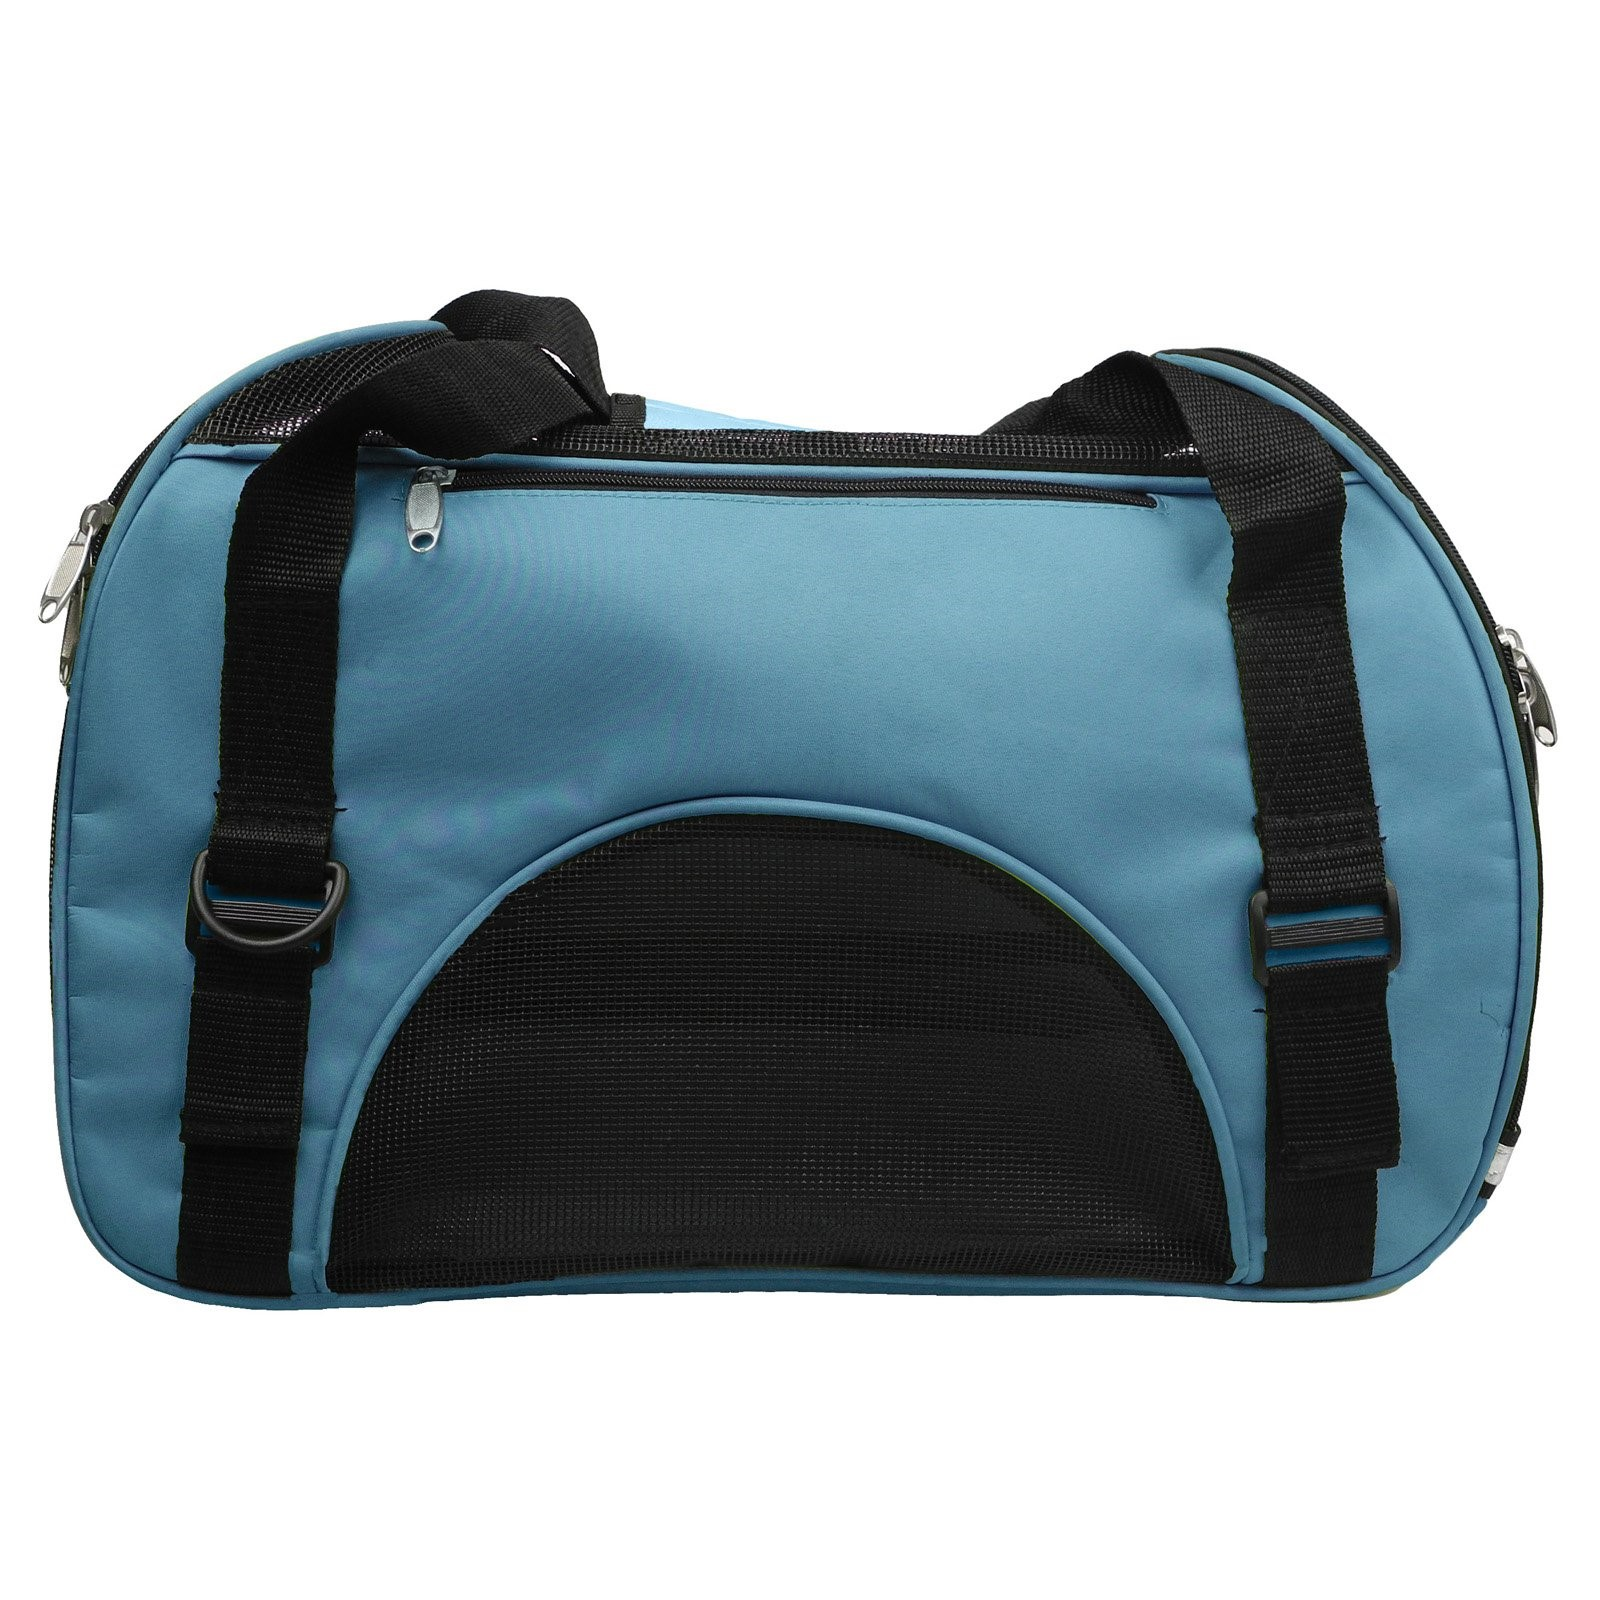 Airline Approved Altitude Force Sporty Zippered Fashion Pet Carrier by Pet Life